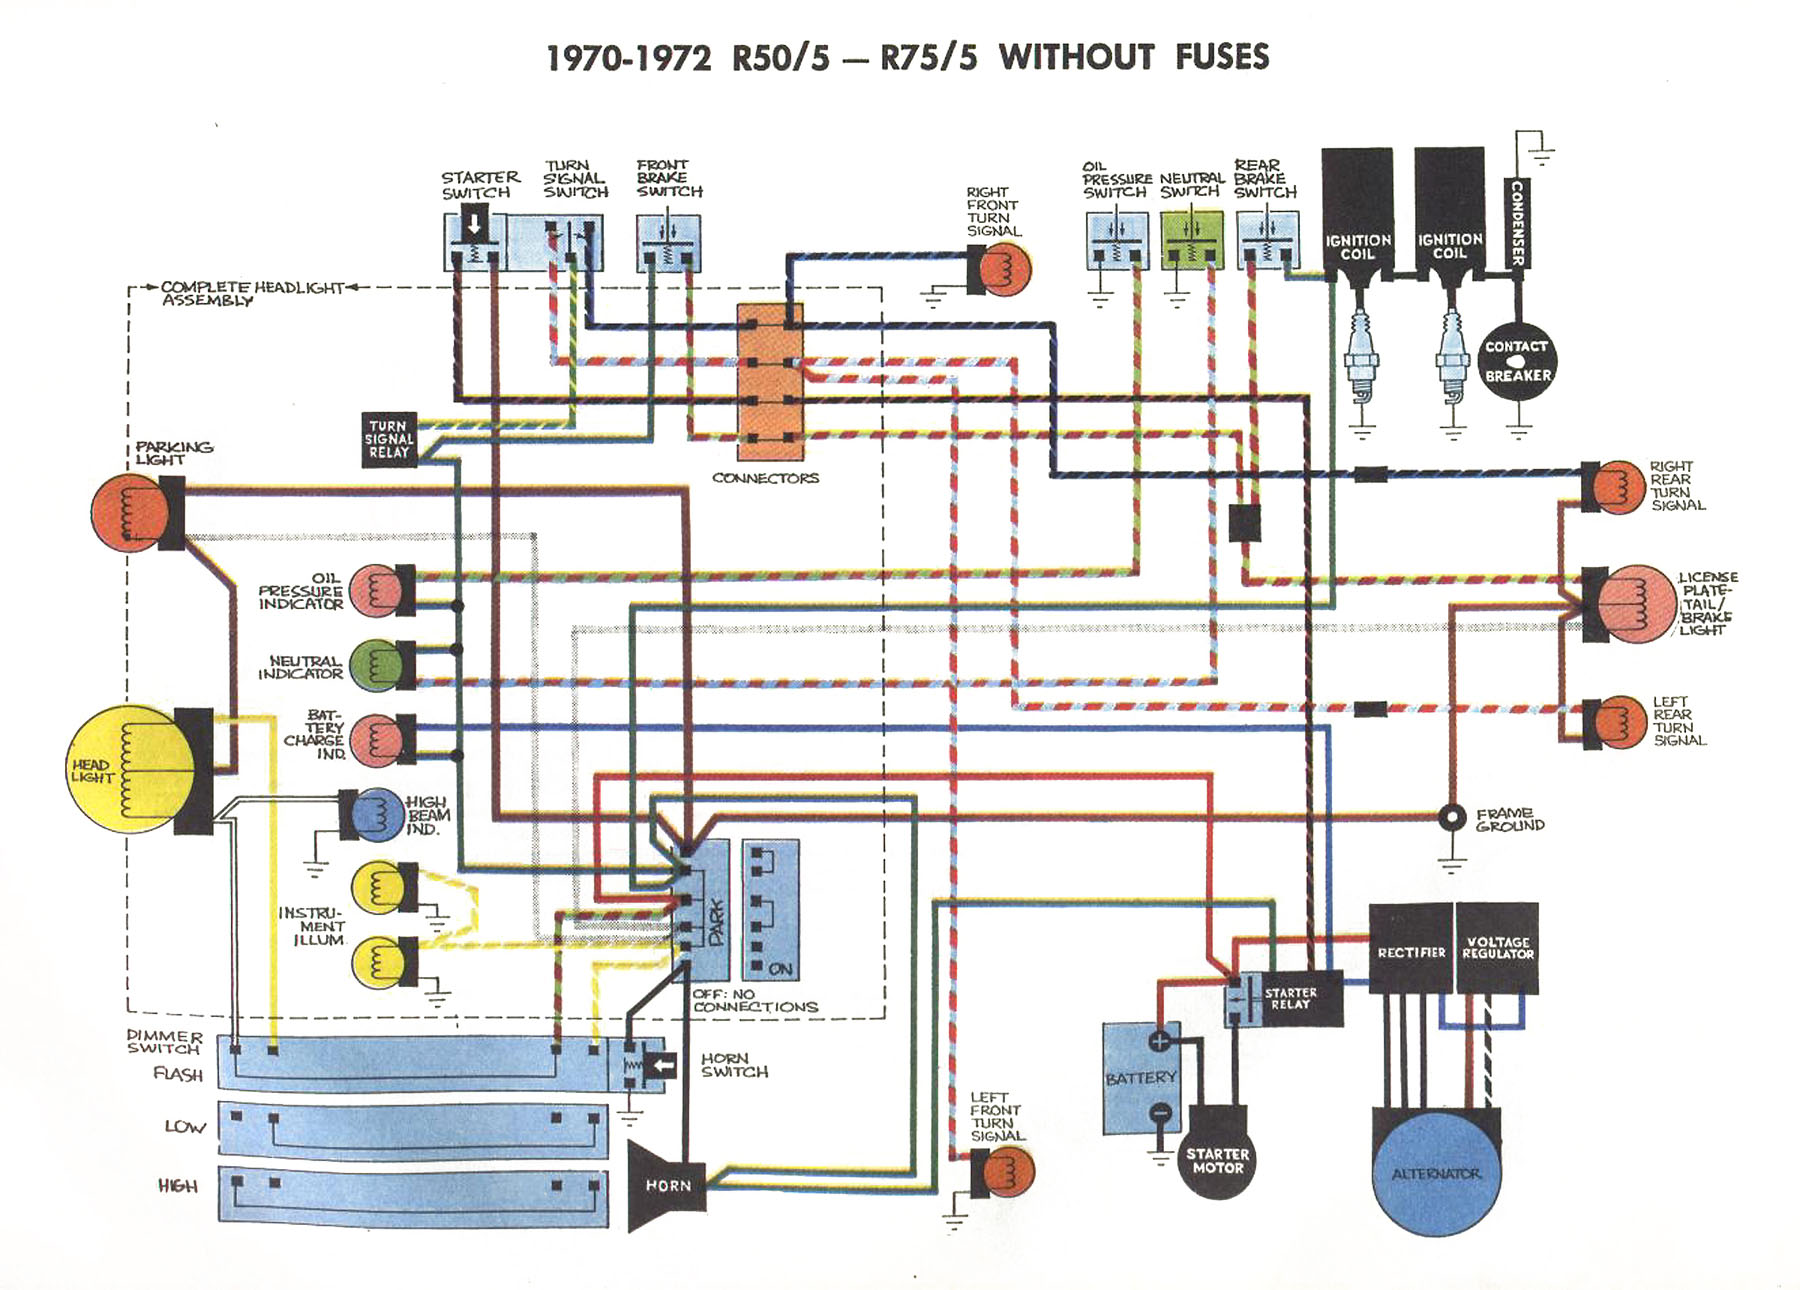 5_unfused_schematic 5 united articles wiring diagrams bmw r75/5 wiring diagram at gsmx.co